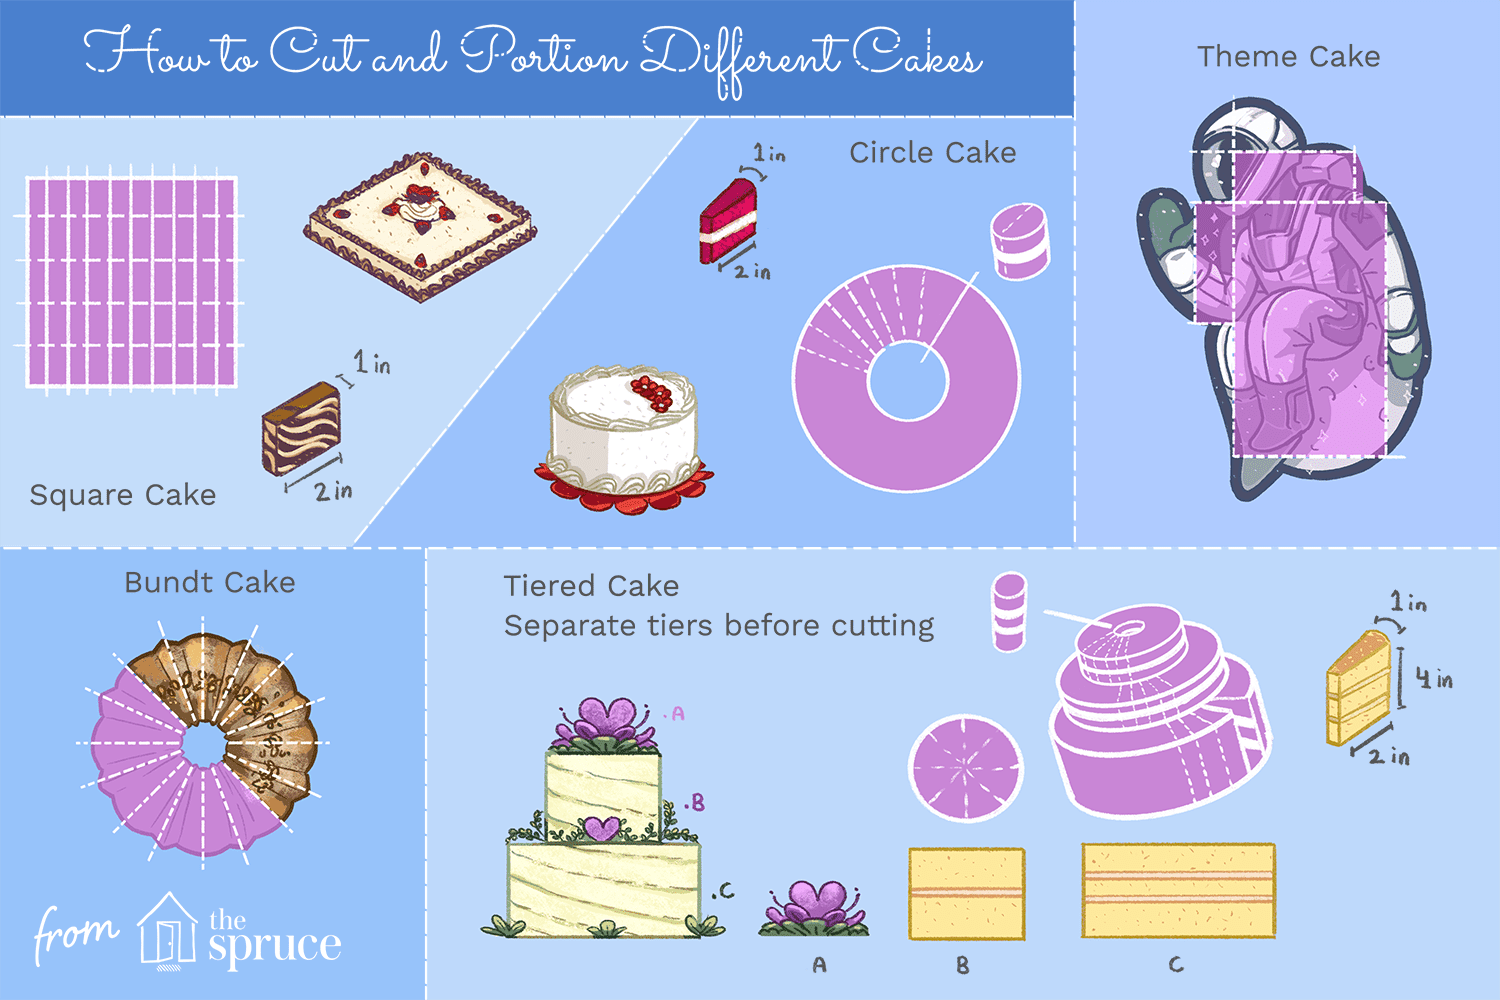 illustration that shows how to cut and portion different cakes